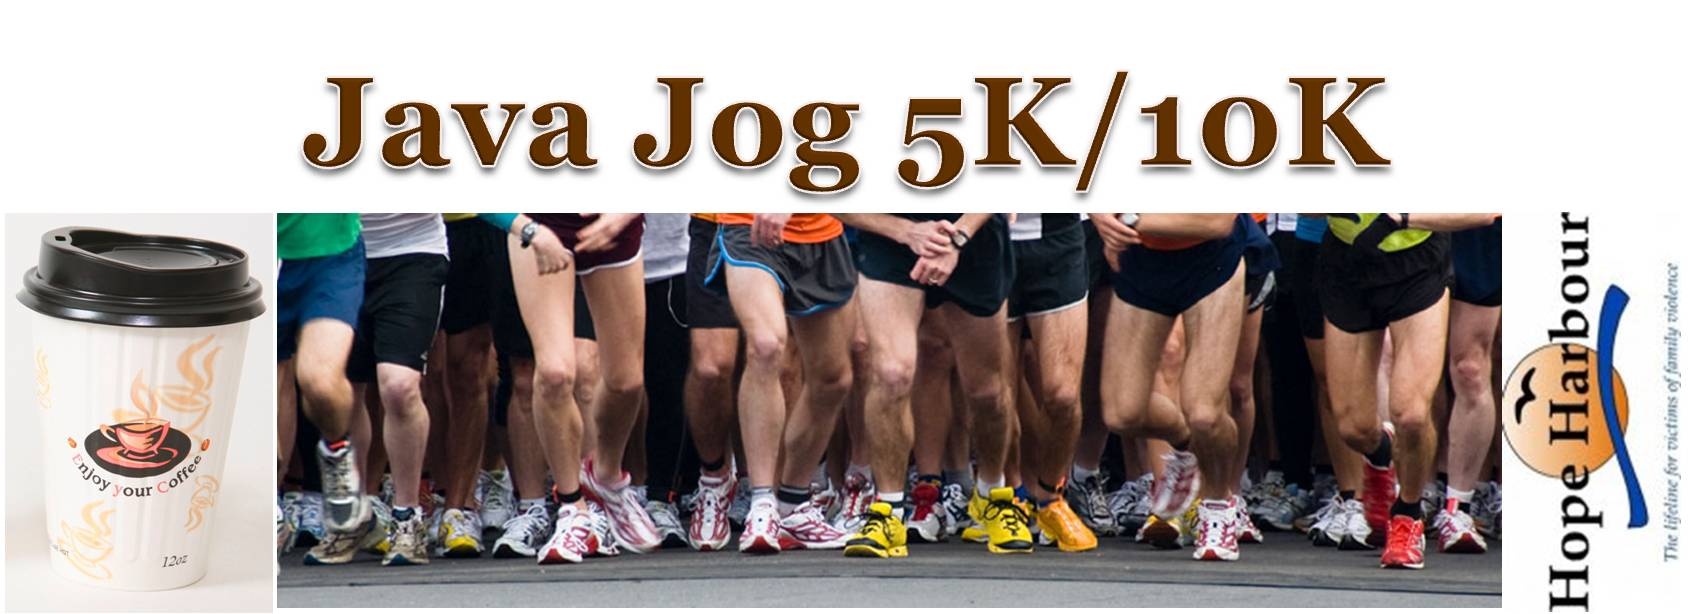 Java Jog 5K/10K-Benefitting Hope Harbour